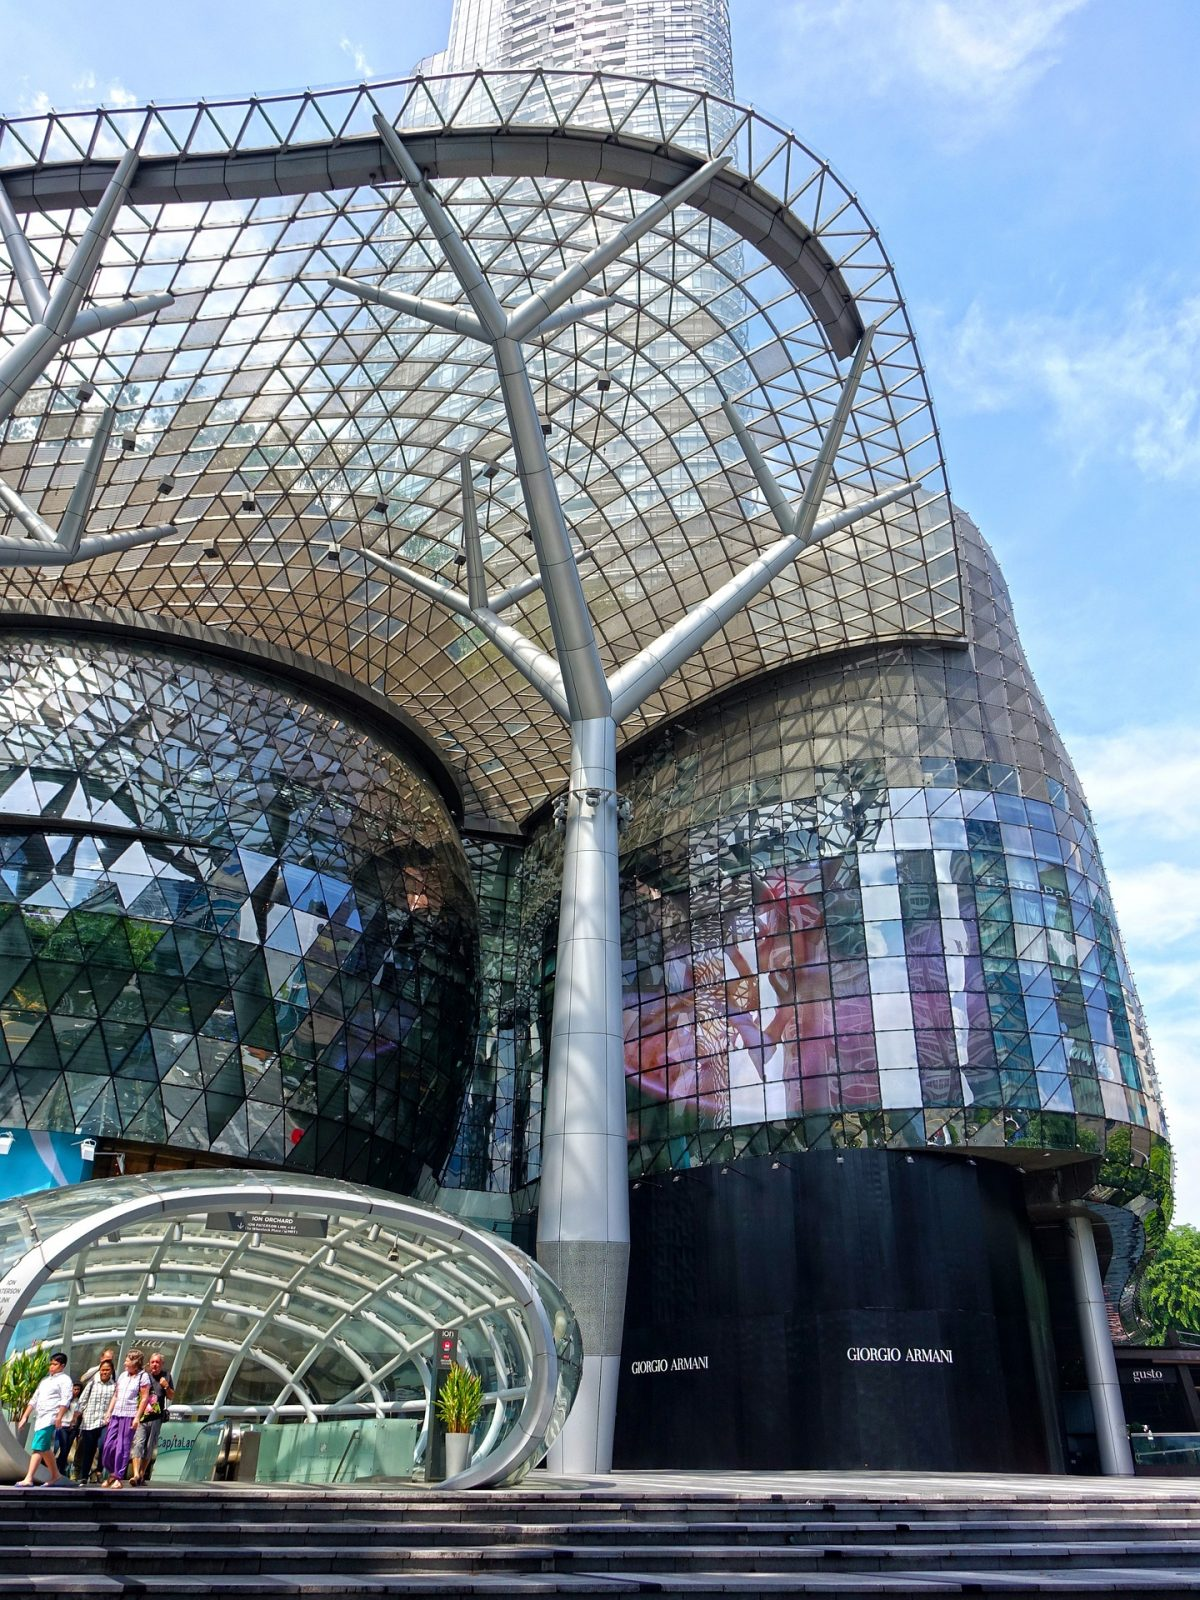 Ion Orchard Mall on orchard Road in Singapore